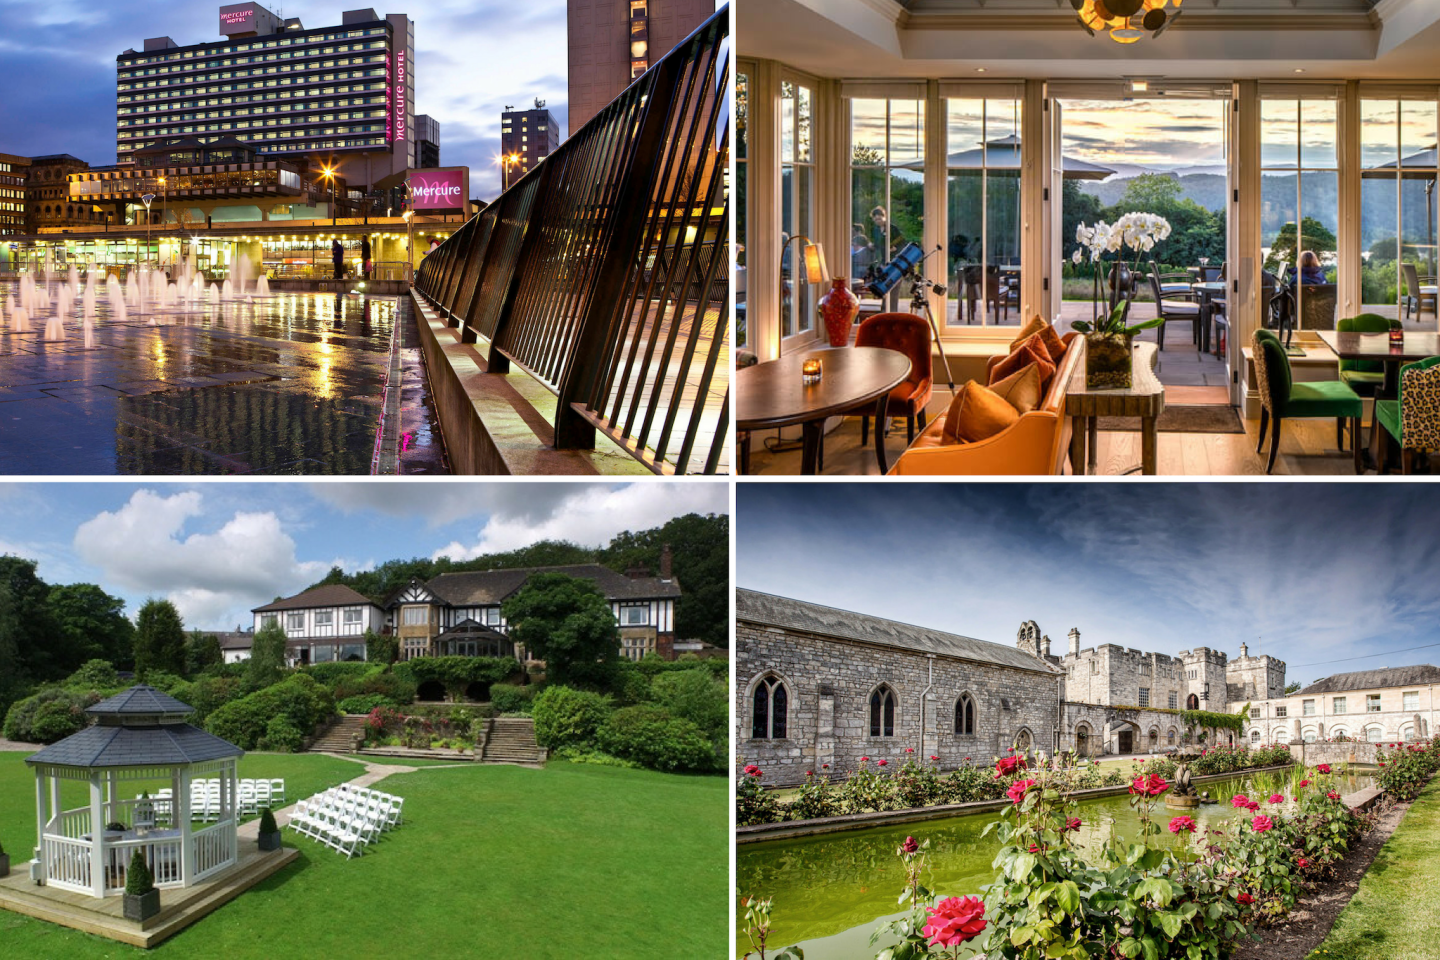 10 Hotels in the North West on My Bucketlist!